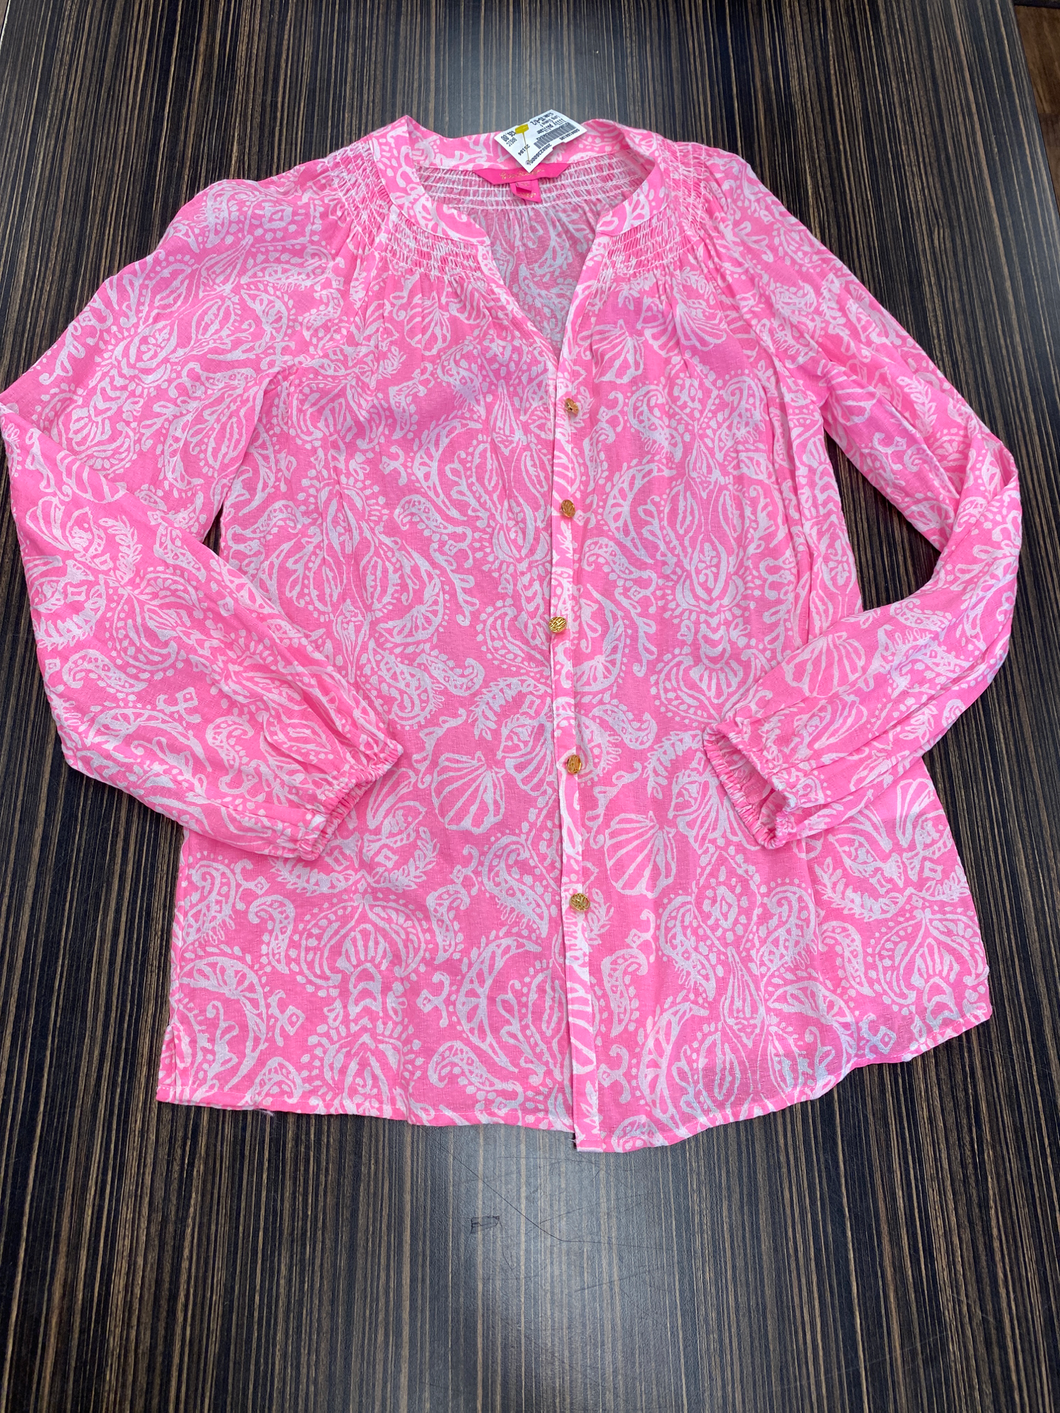 Lilly Pulitzer Long Sleeve Size Xs (0 2)